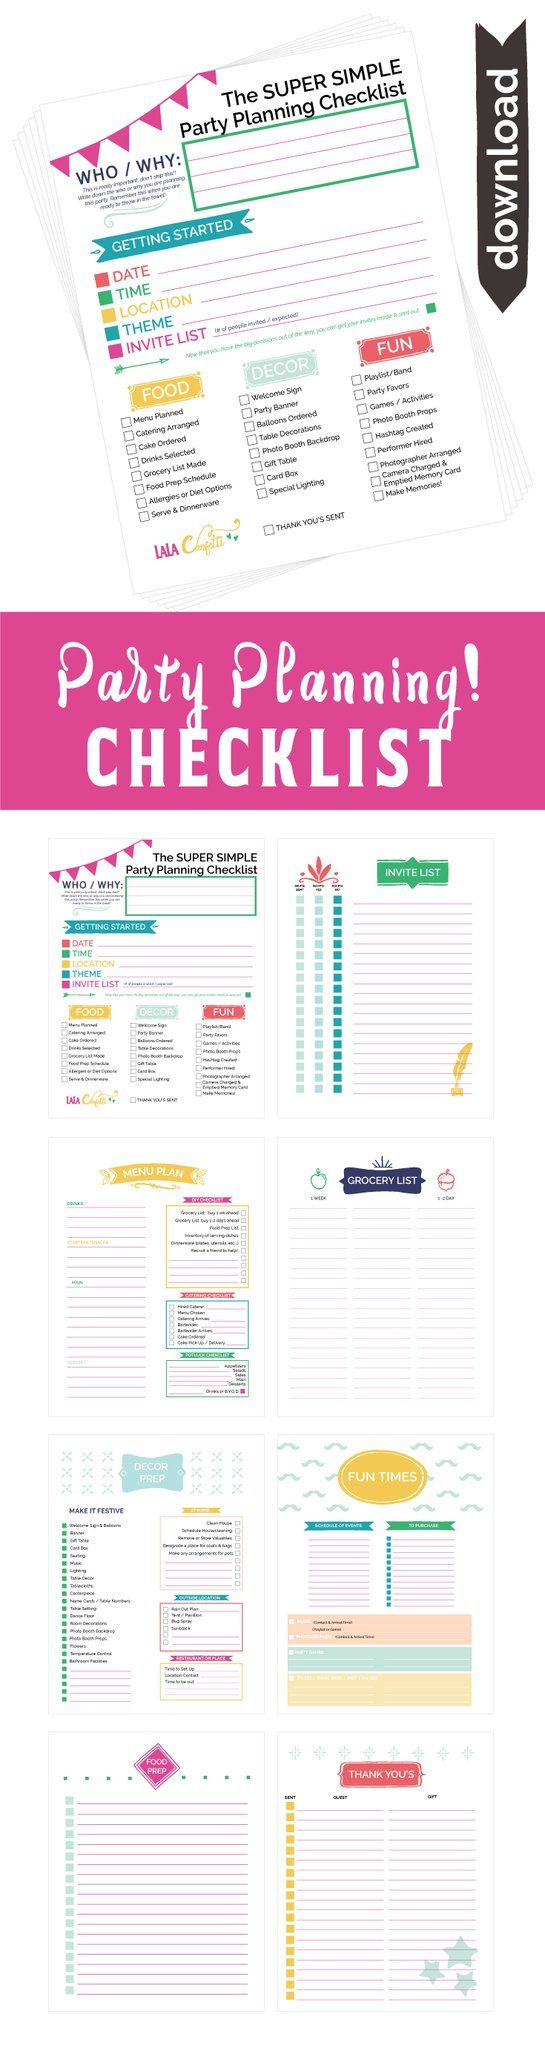 party planning checklist put it all together party planning